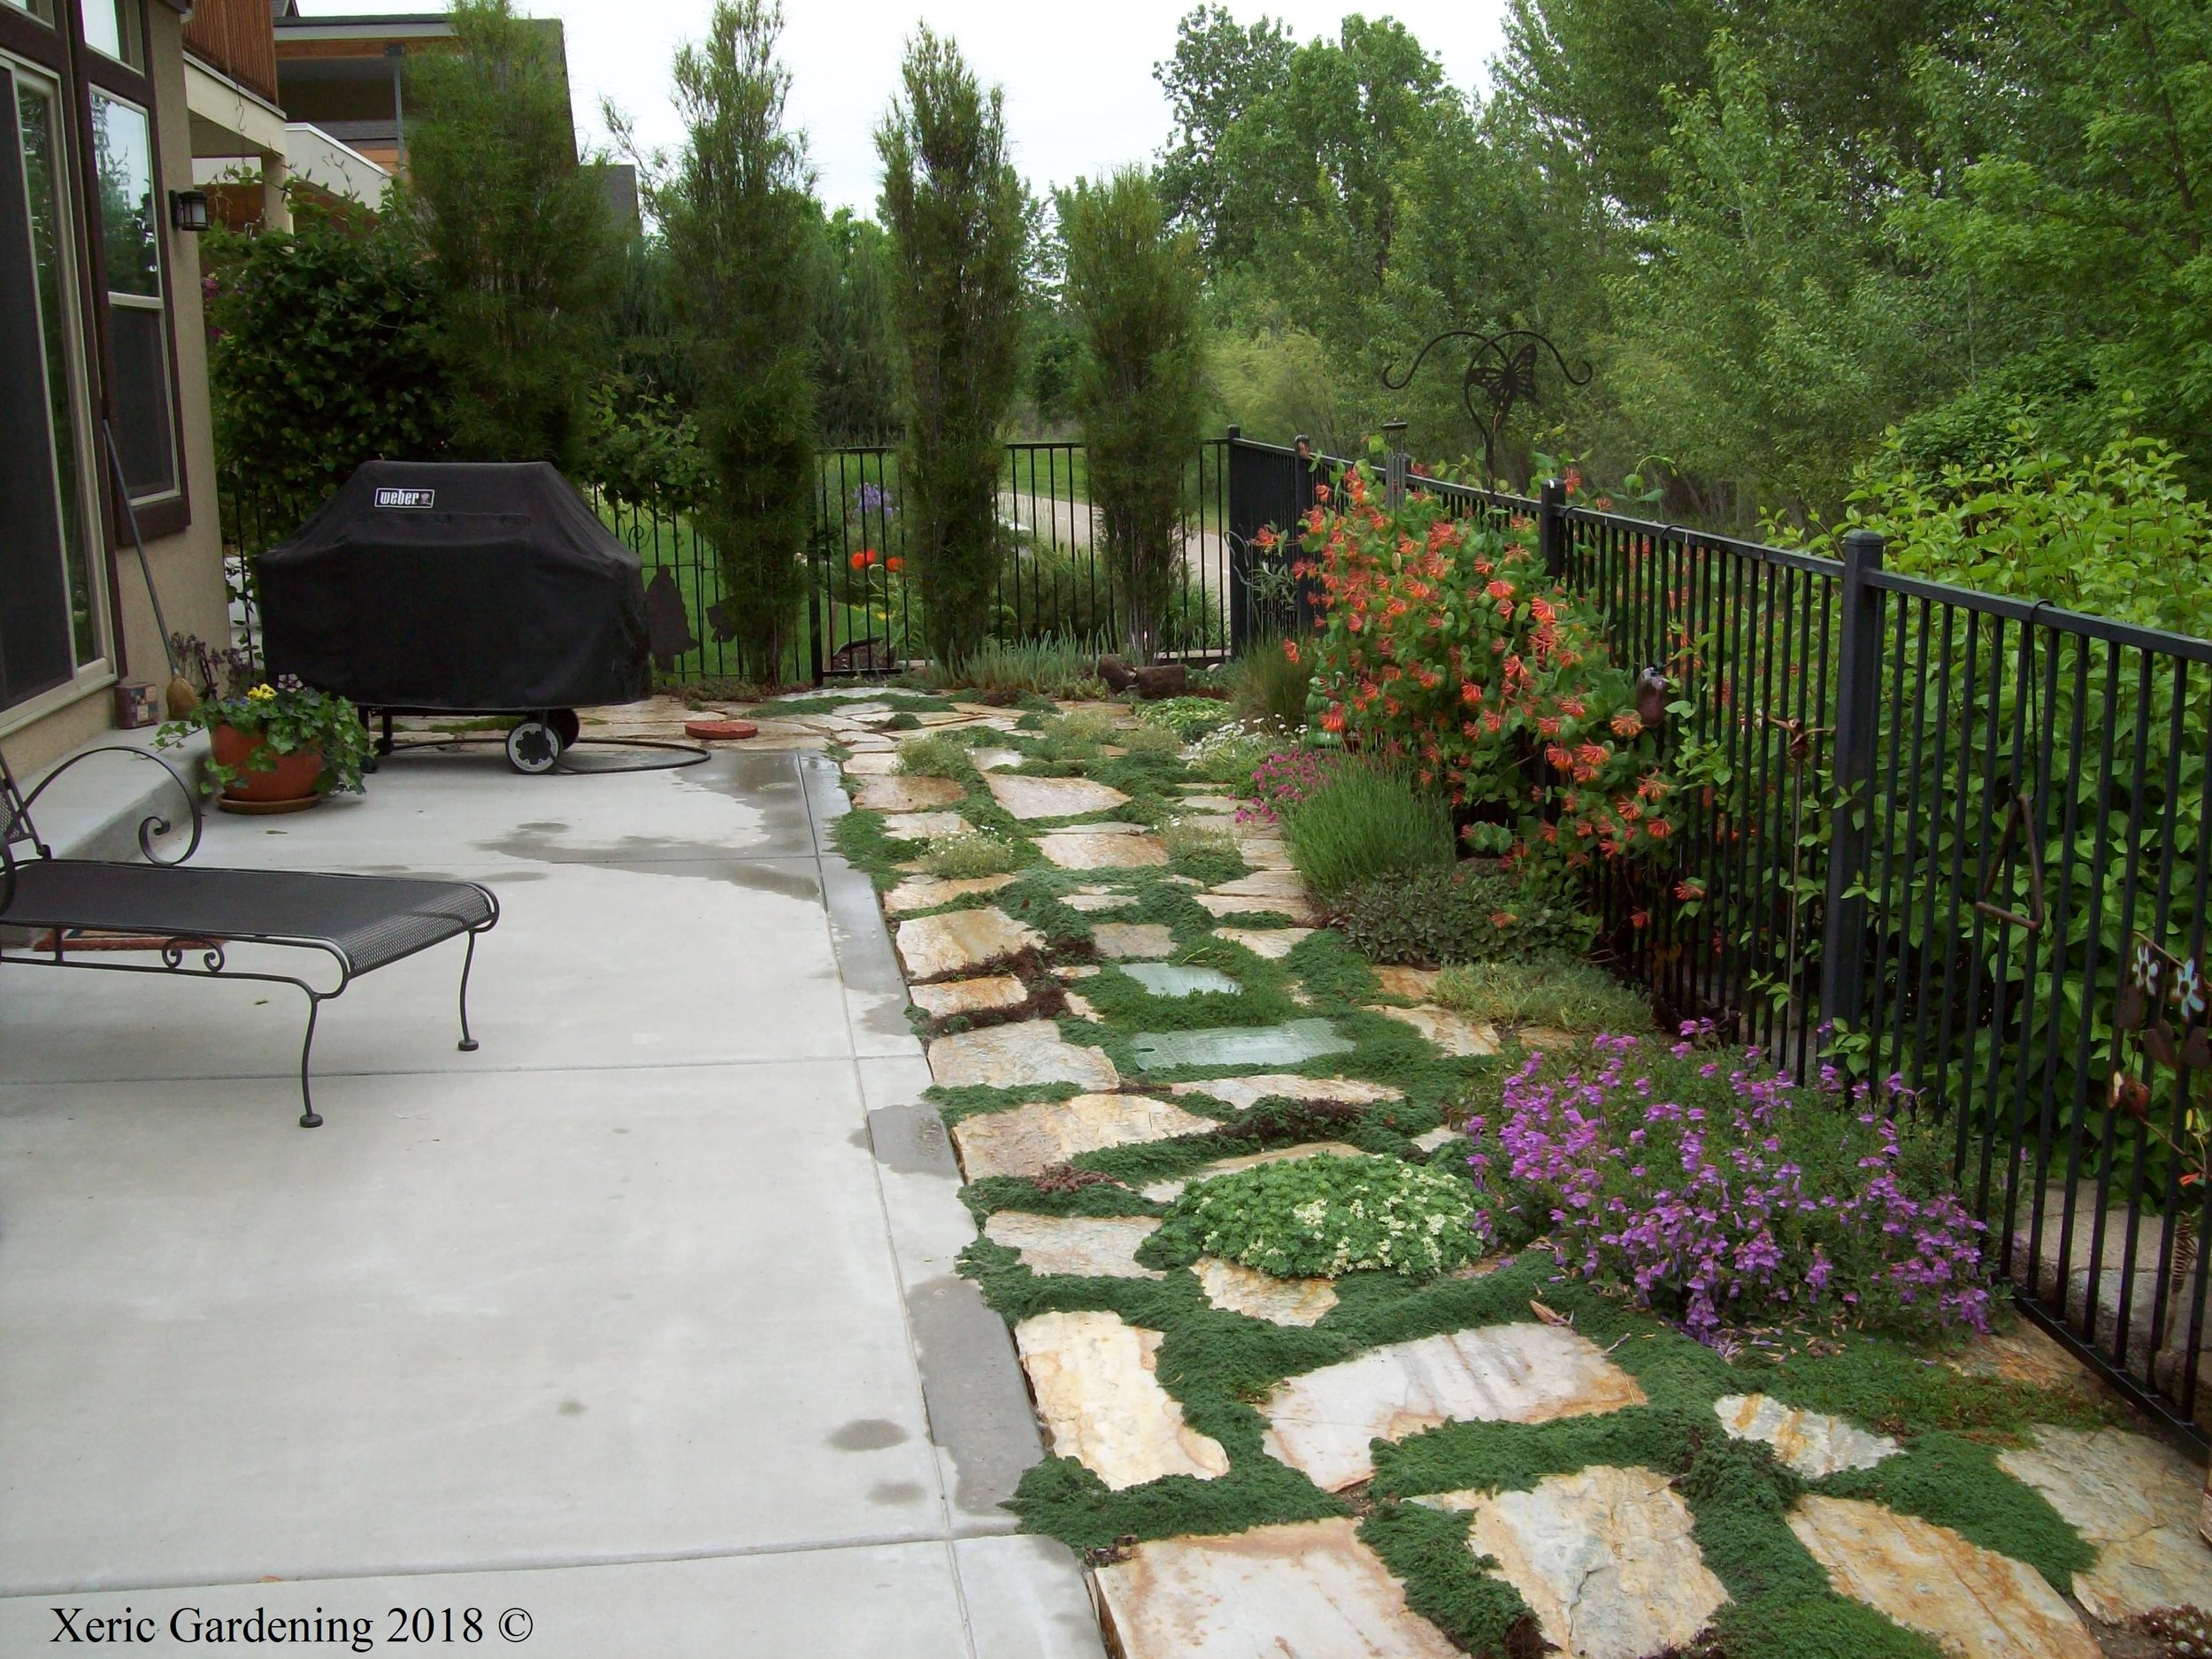 Formal... - Though we tend to have a more naturalistic style, xeric principles are easily applied to a more formal setting. This north-facing garden gets watered once a week.